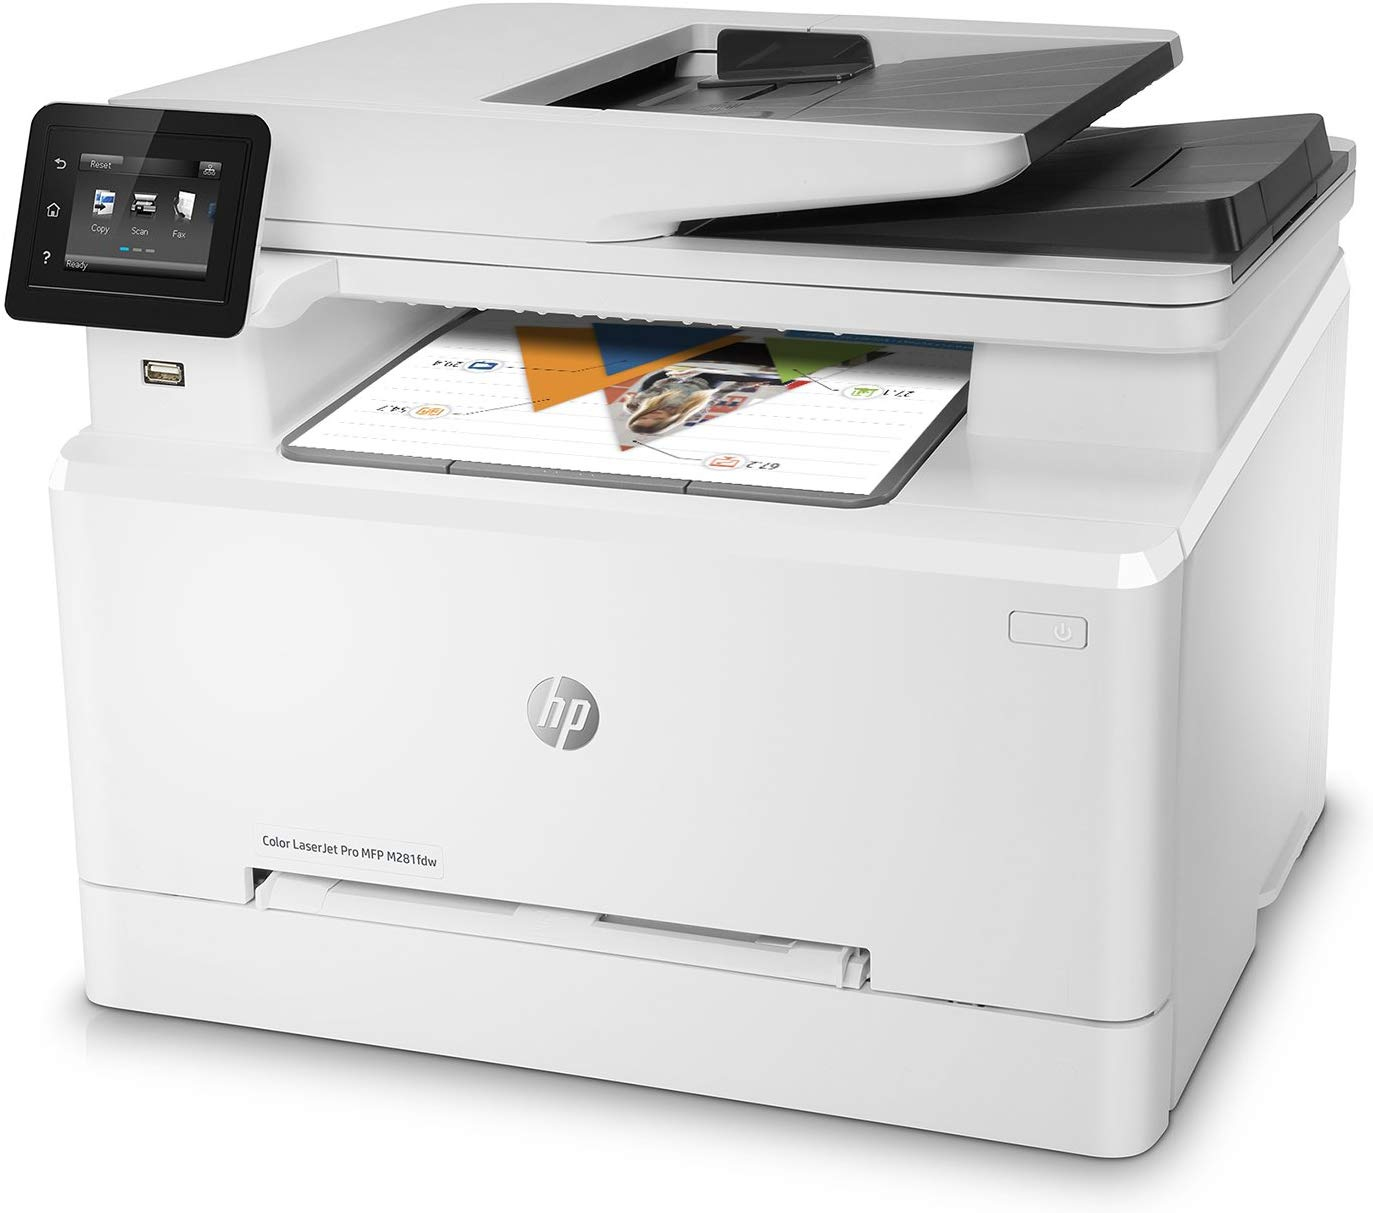 HP LaserJet Pro M281fdw All in One Wireless Color Laser Printer - Affordable Printers